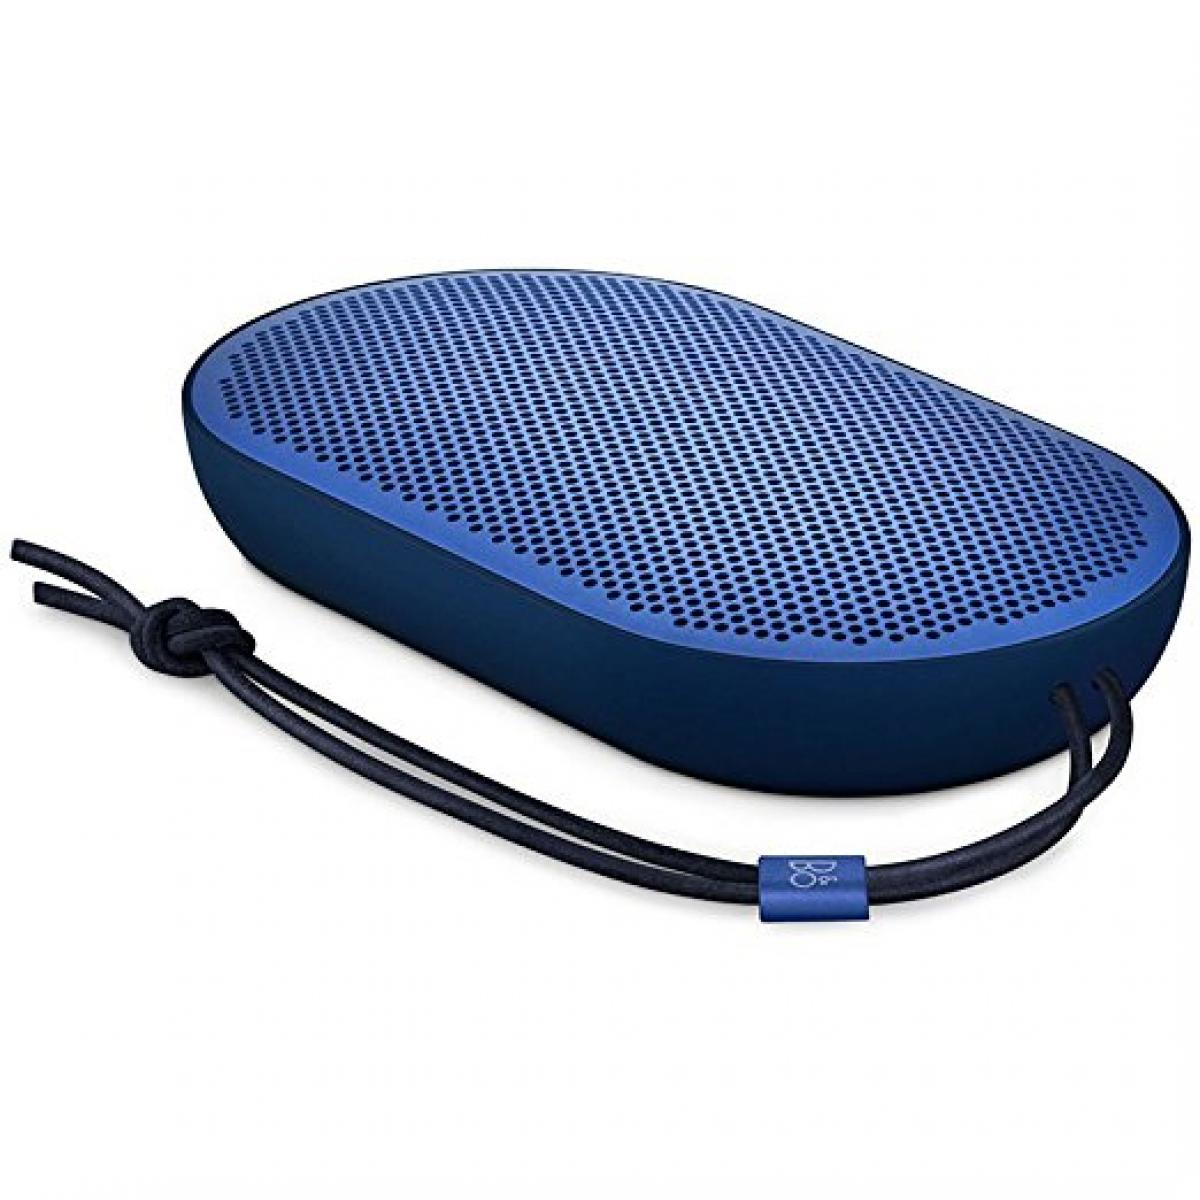 Beoplay P2 Portable Bluetooth Speaker